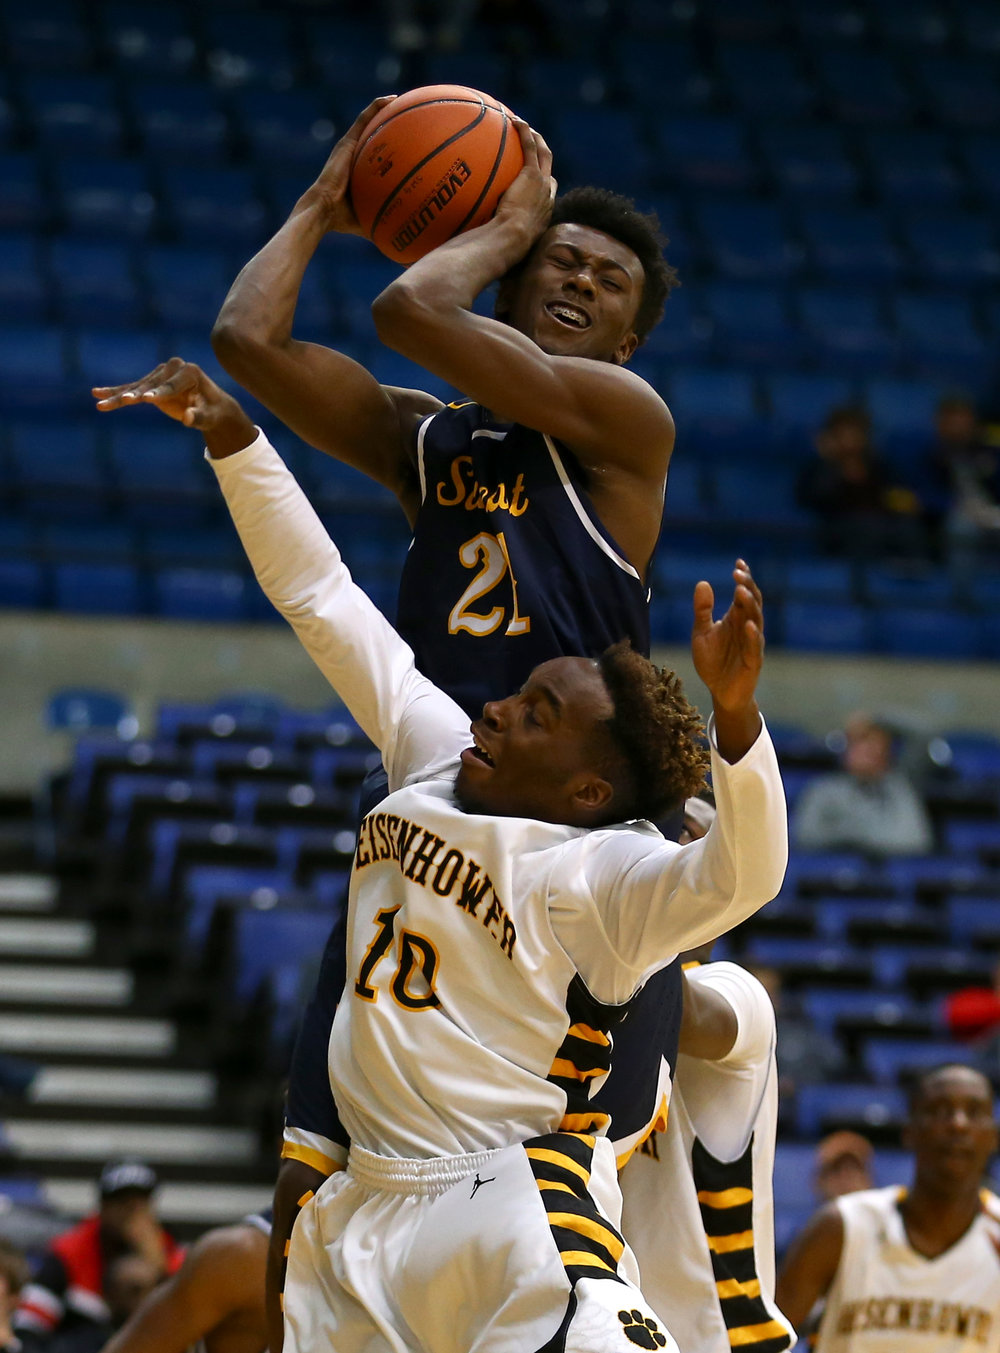 Southeast's Anthony Fairlee (21) comes down with a rebound against Decatur Eisenhower's Qualyn Young (10) in the first quarter during the Capital City Showcase Prairie Capital Convention Center, Saturday, Dec. 3, 2016, in Springfield, Ill. Justin L. Fowler/The State Journal-Register